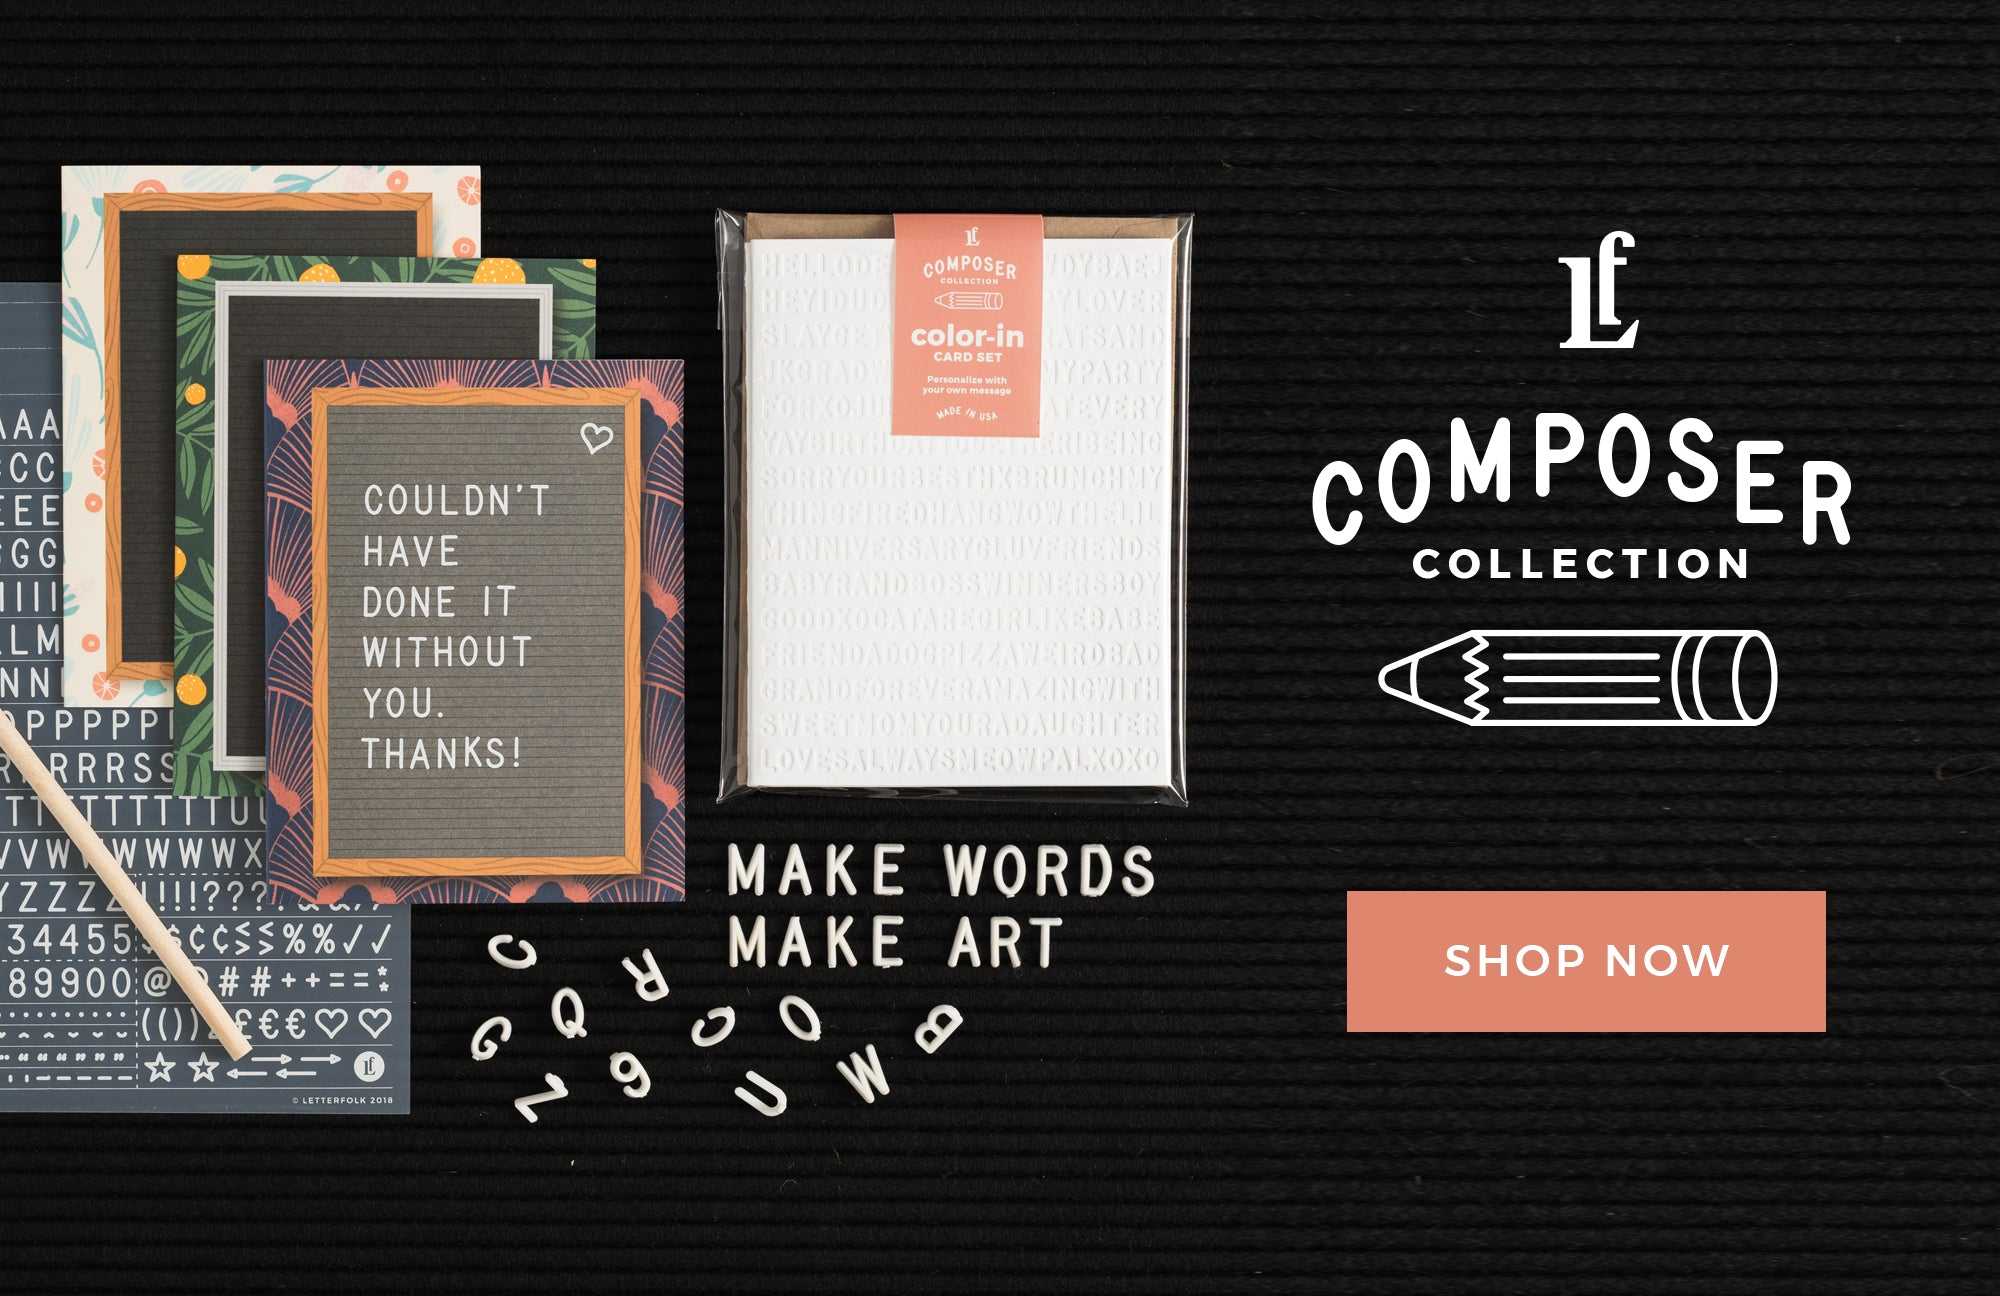 Composer Collection by Letterfolk